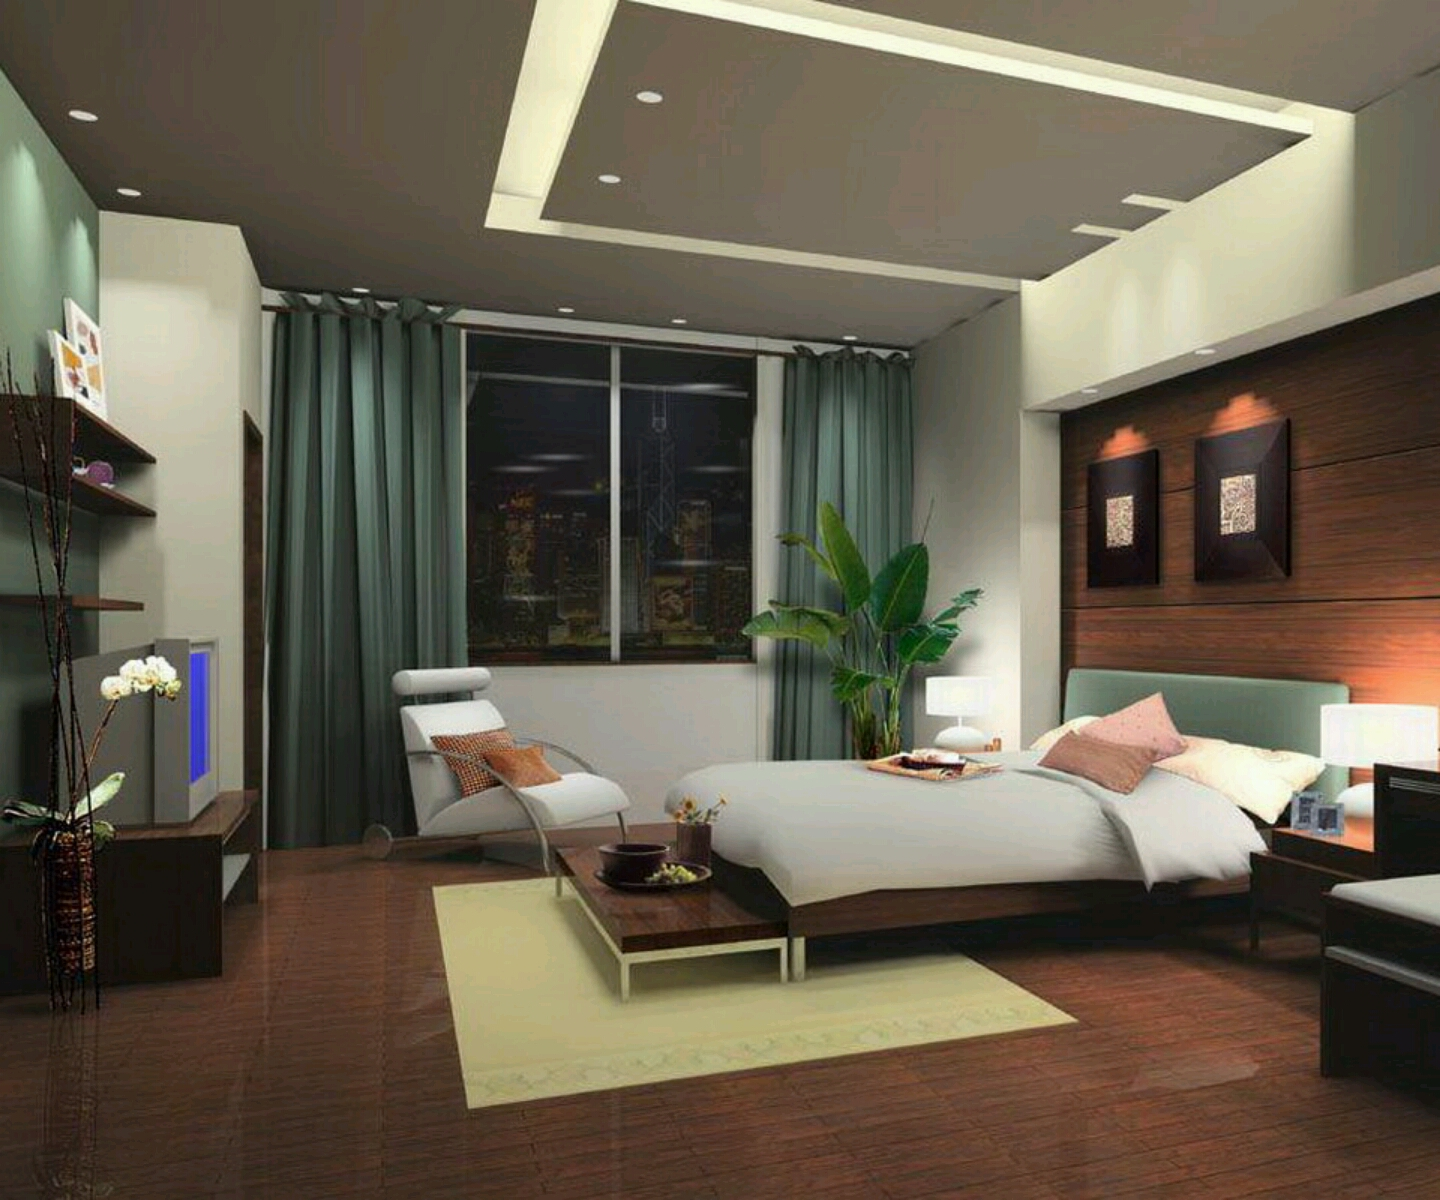 New home designs latest modern bedrooms designs best ideas for New bed designs images